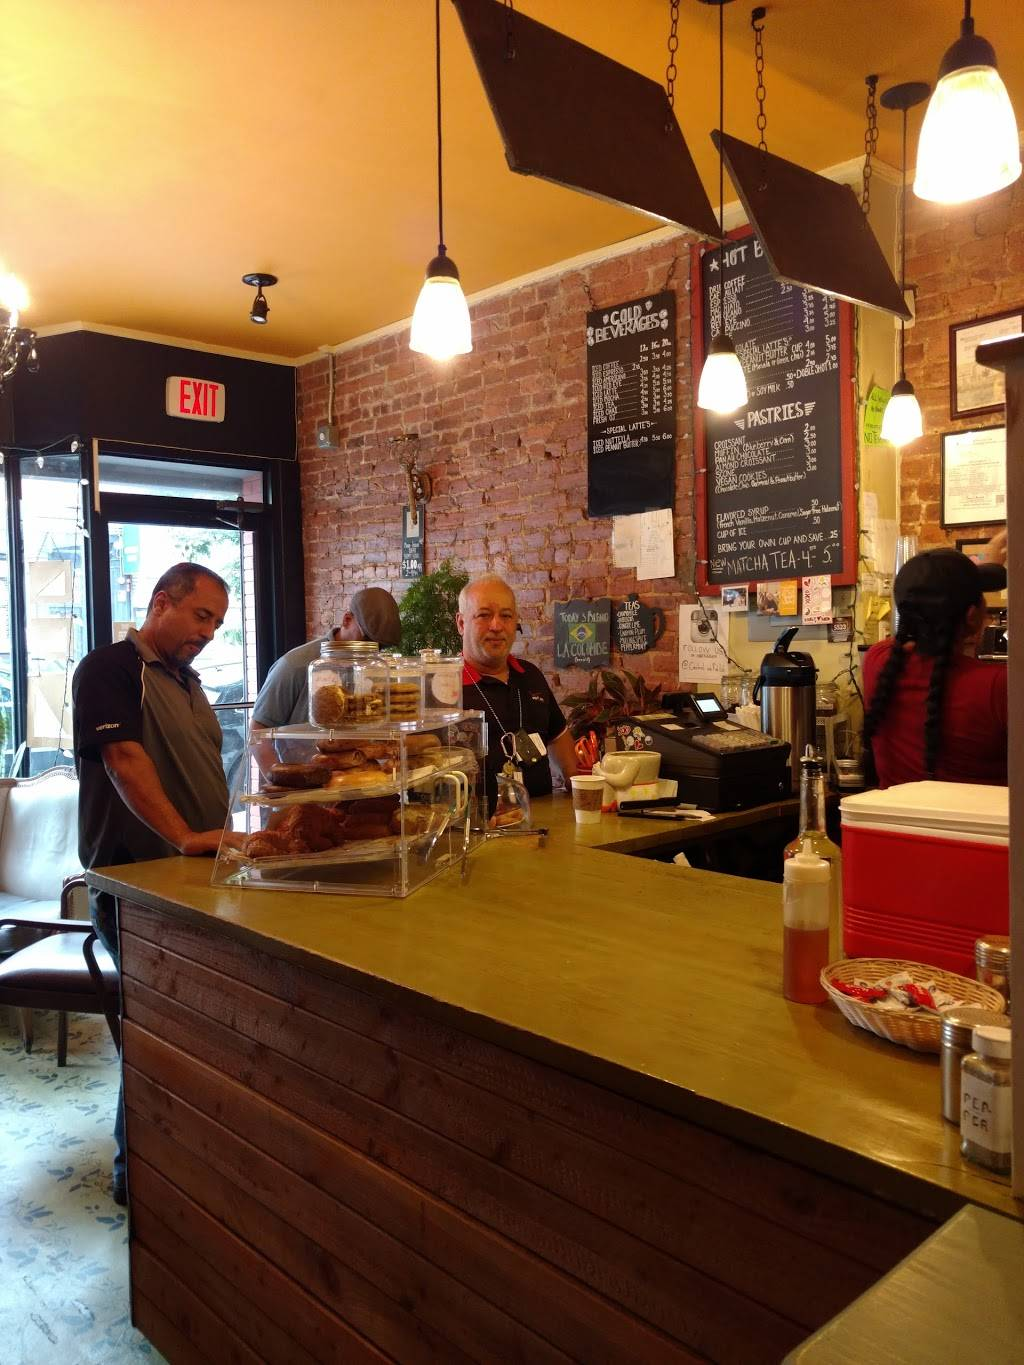 Central Cafe Brooklyn | cafe | 108 Central Ave, Brooklyn, NY 11206, USA | 7184973028 OR +1 718-497-3028